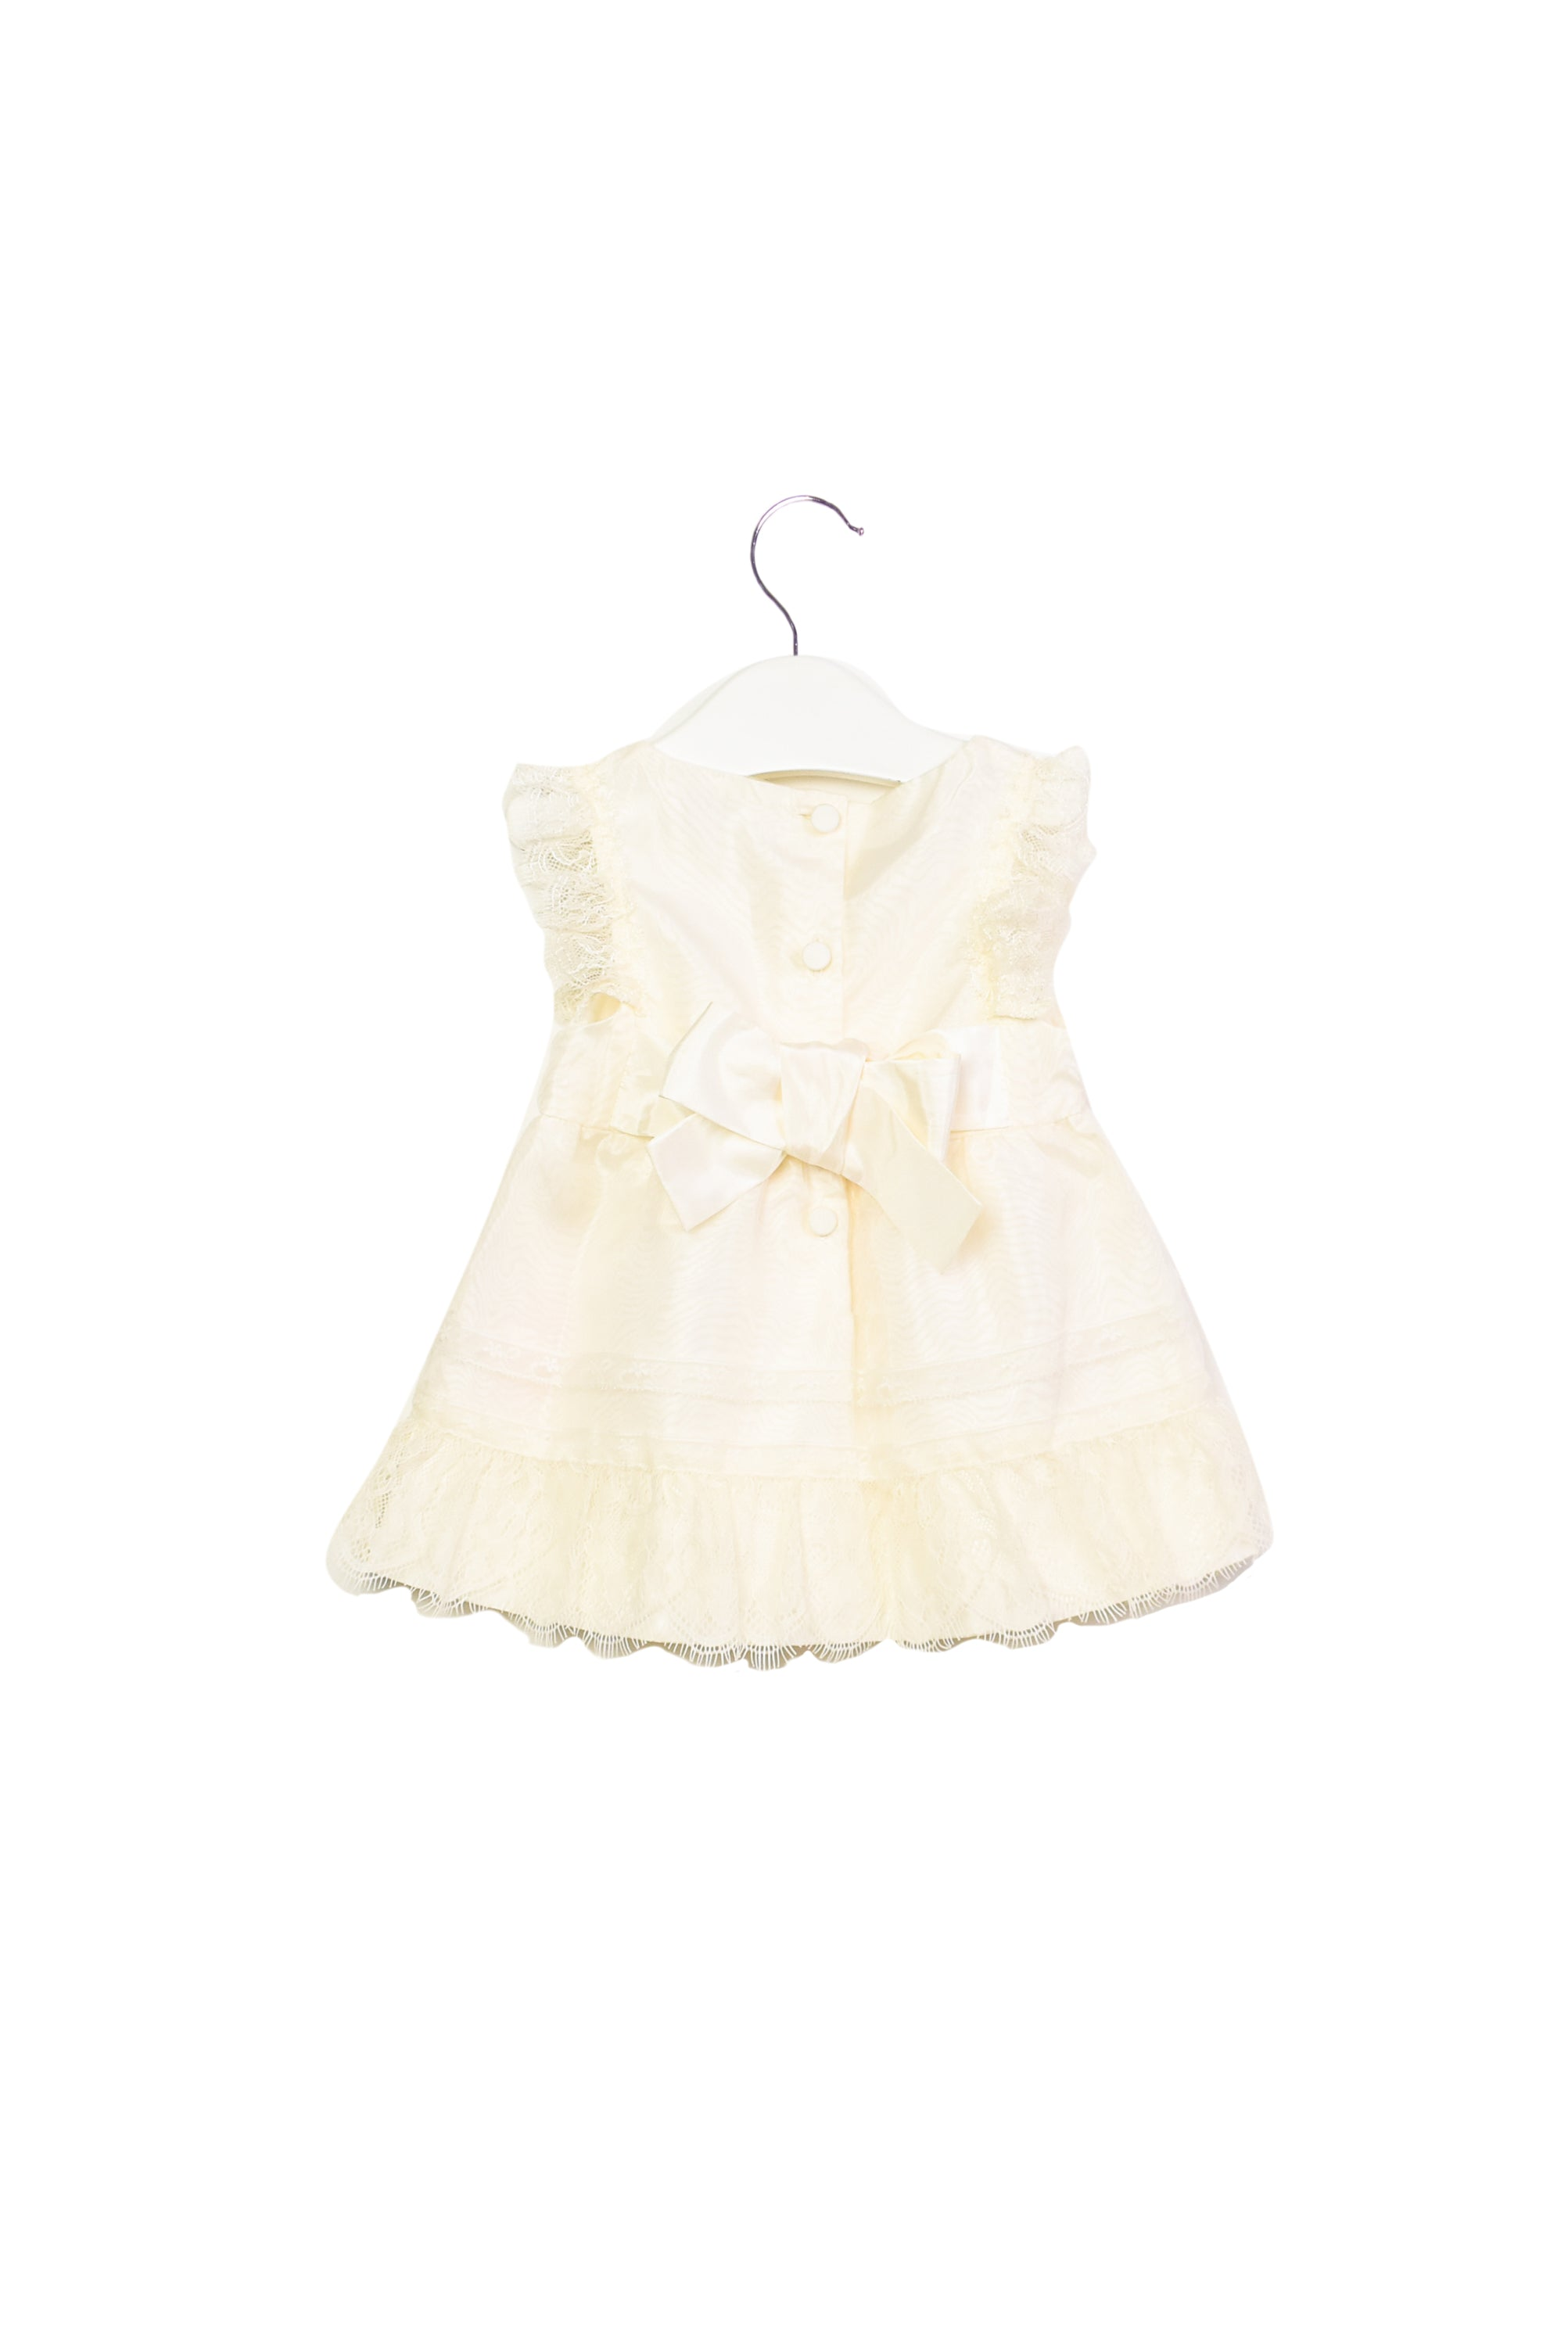 10014309 Nicholas & Bears Baby ~ Dress and Bloomer 12M at Retykle